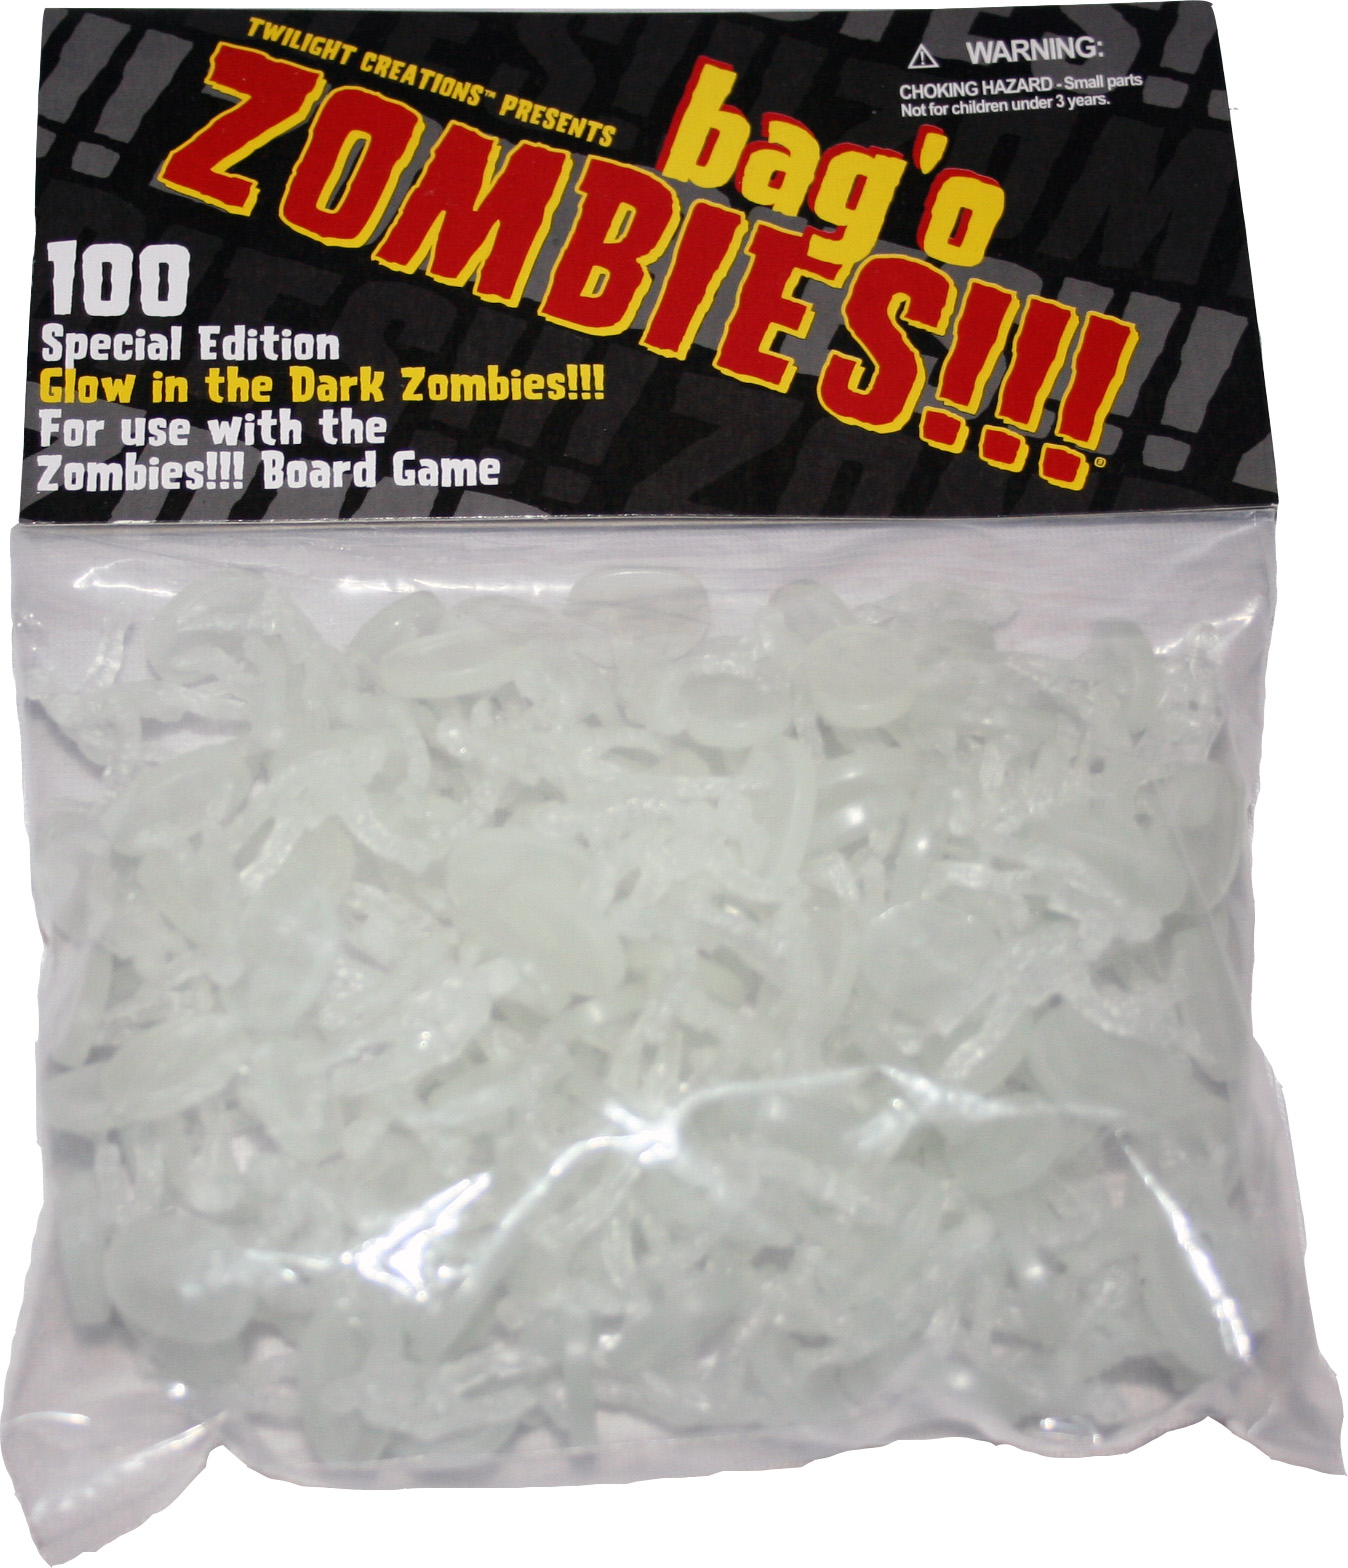 Zombies!!!: Bag O Zombies (glow-in-the-dark) Box Front